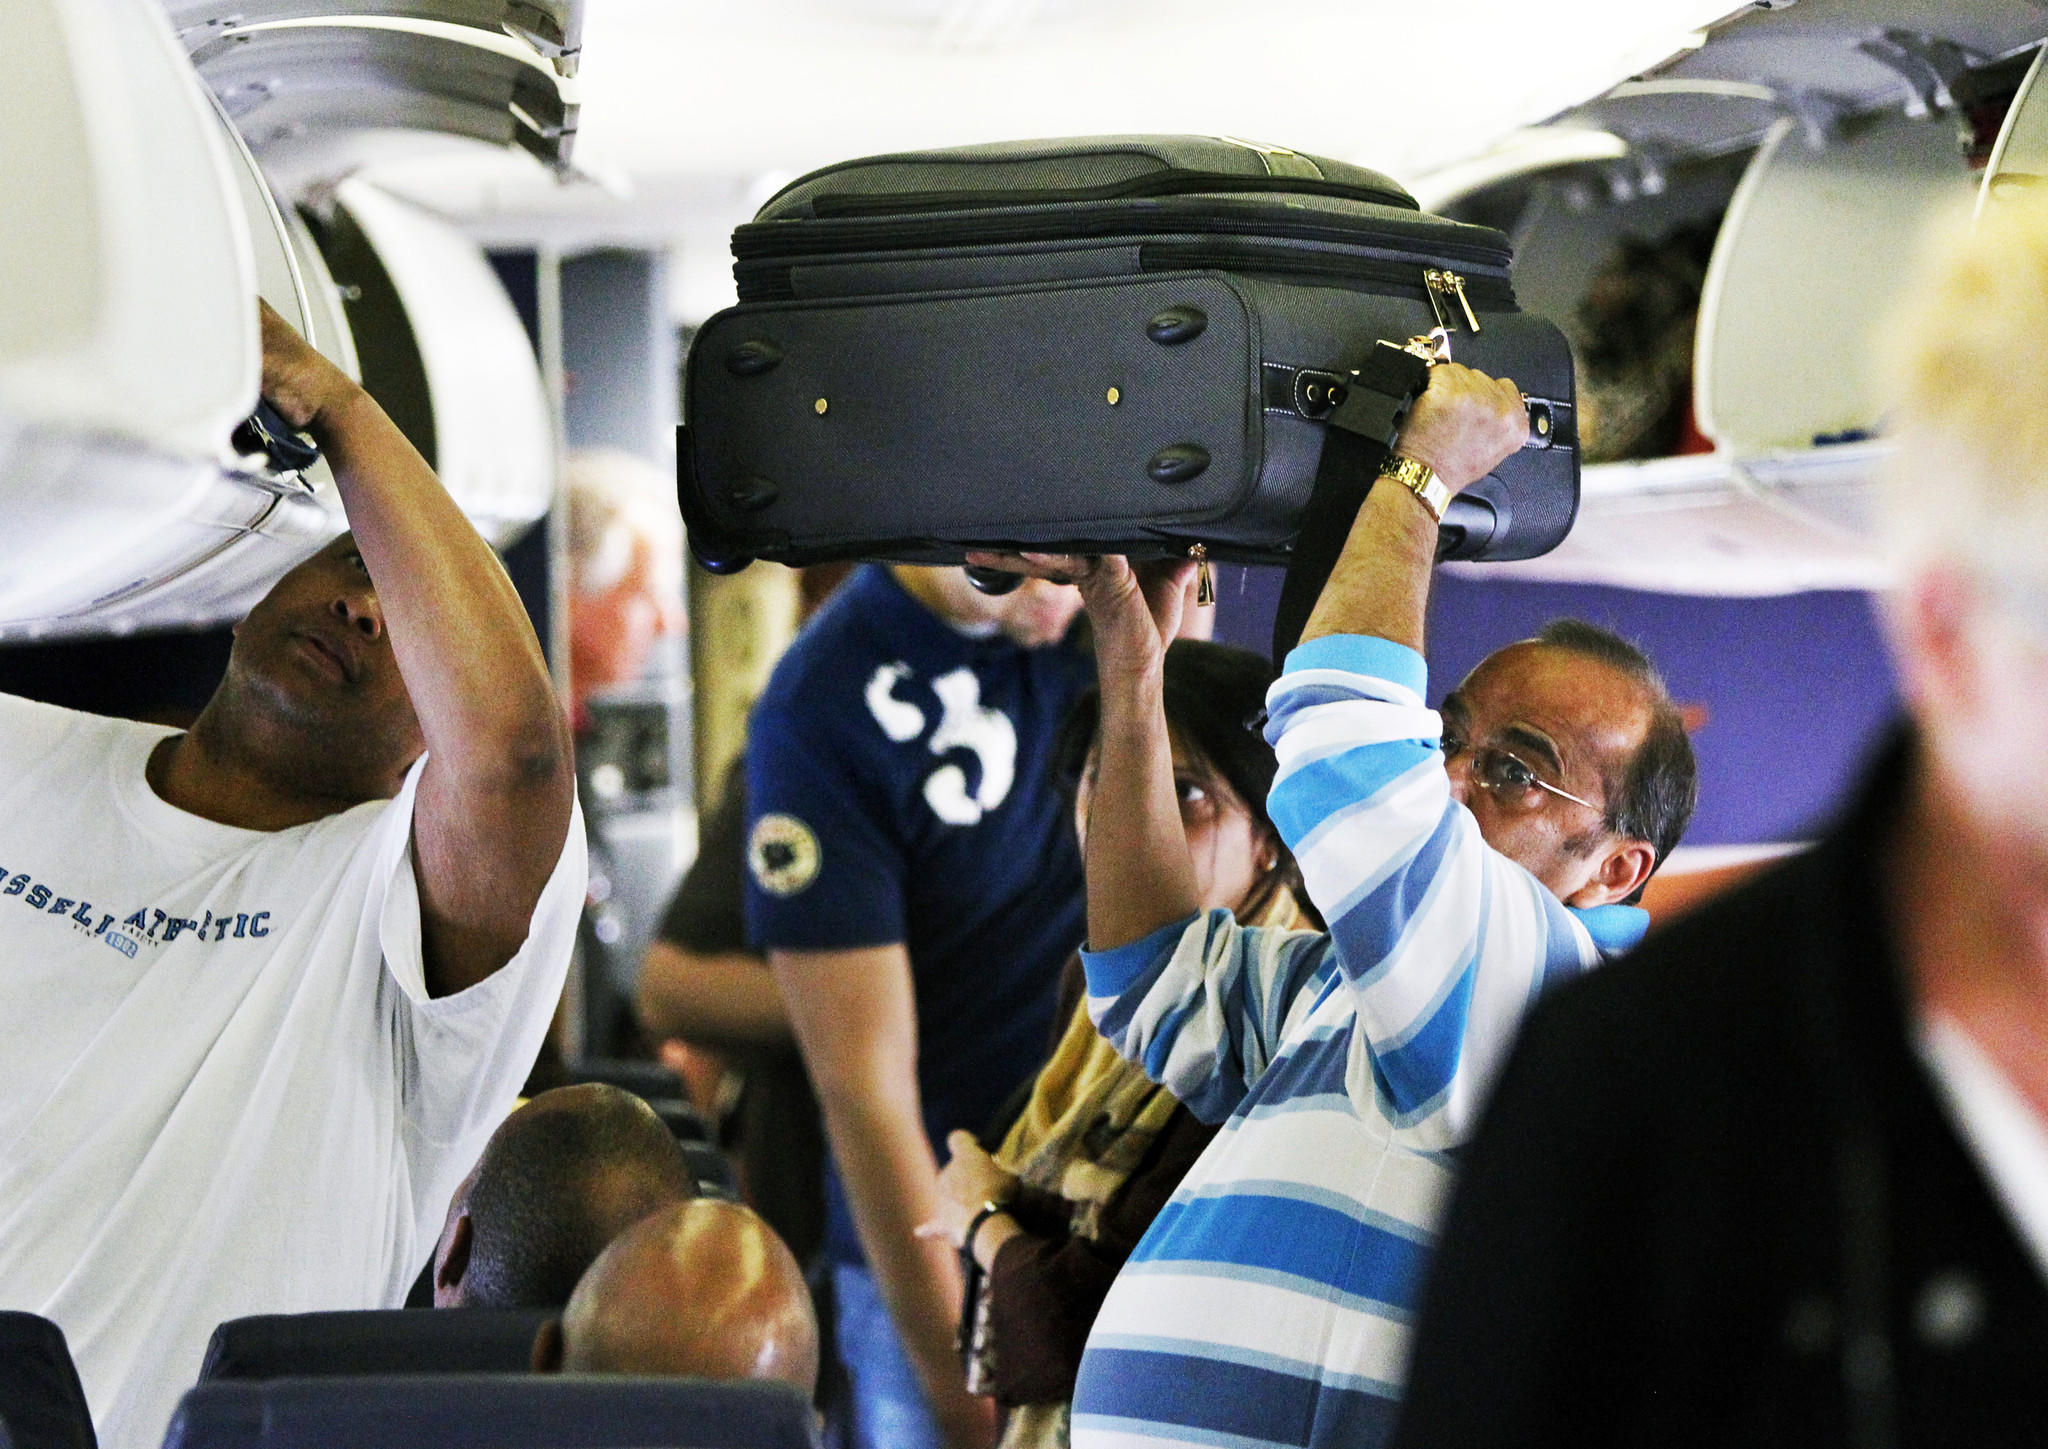 Crackdown On Oversized Carry On Bags Backed By Many Fliers